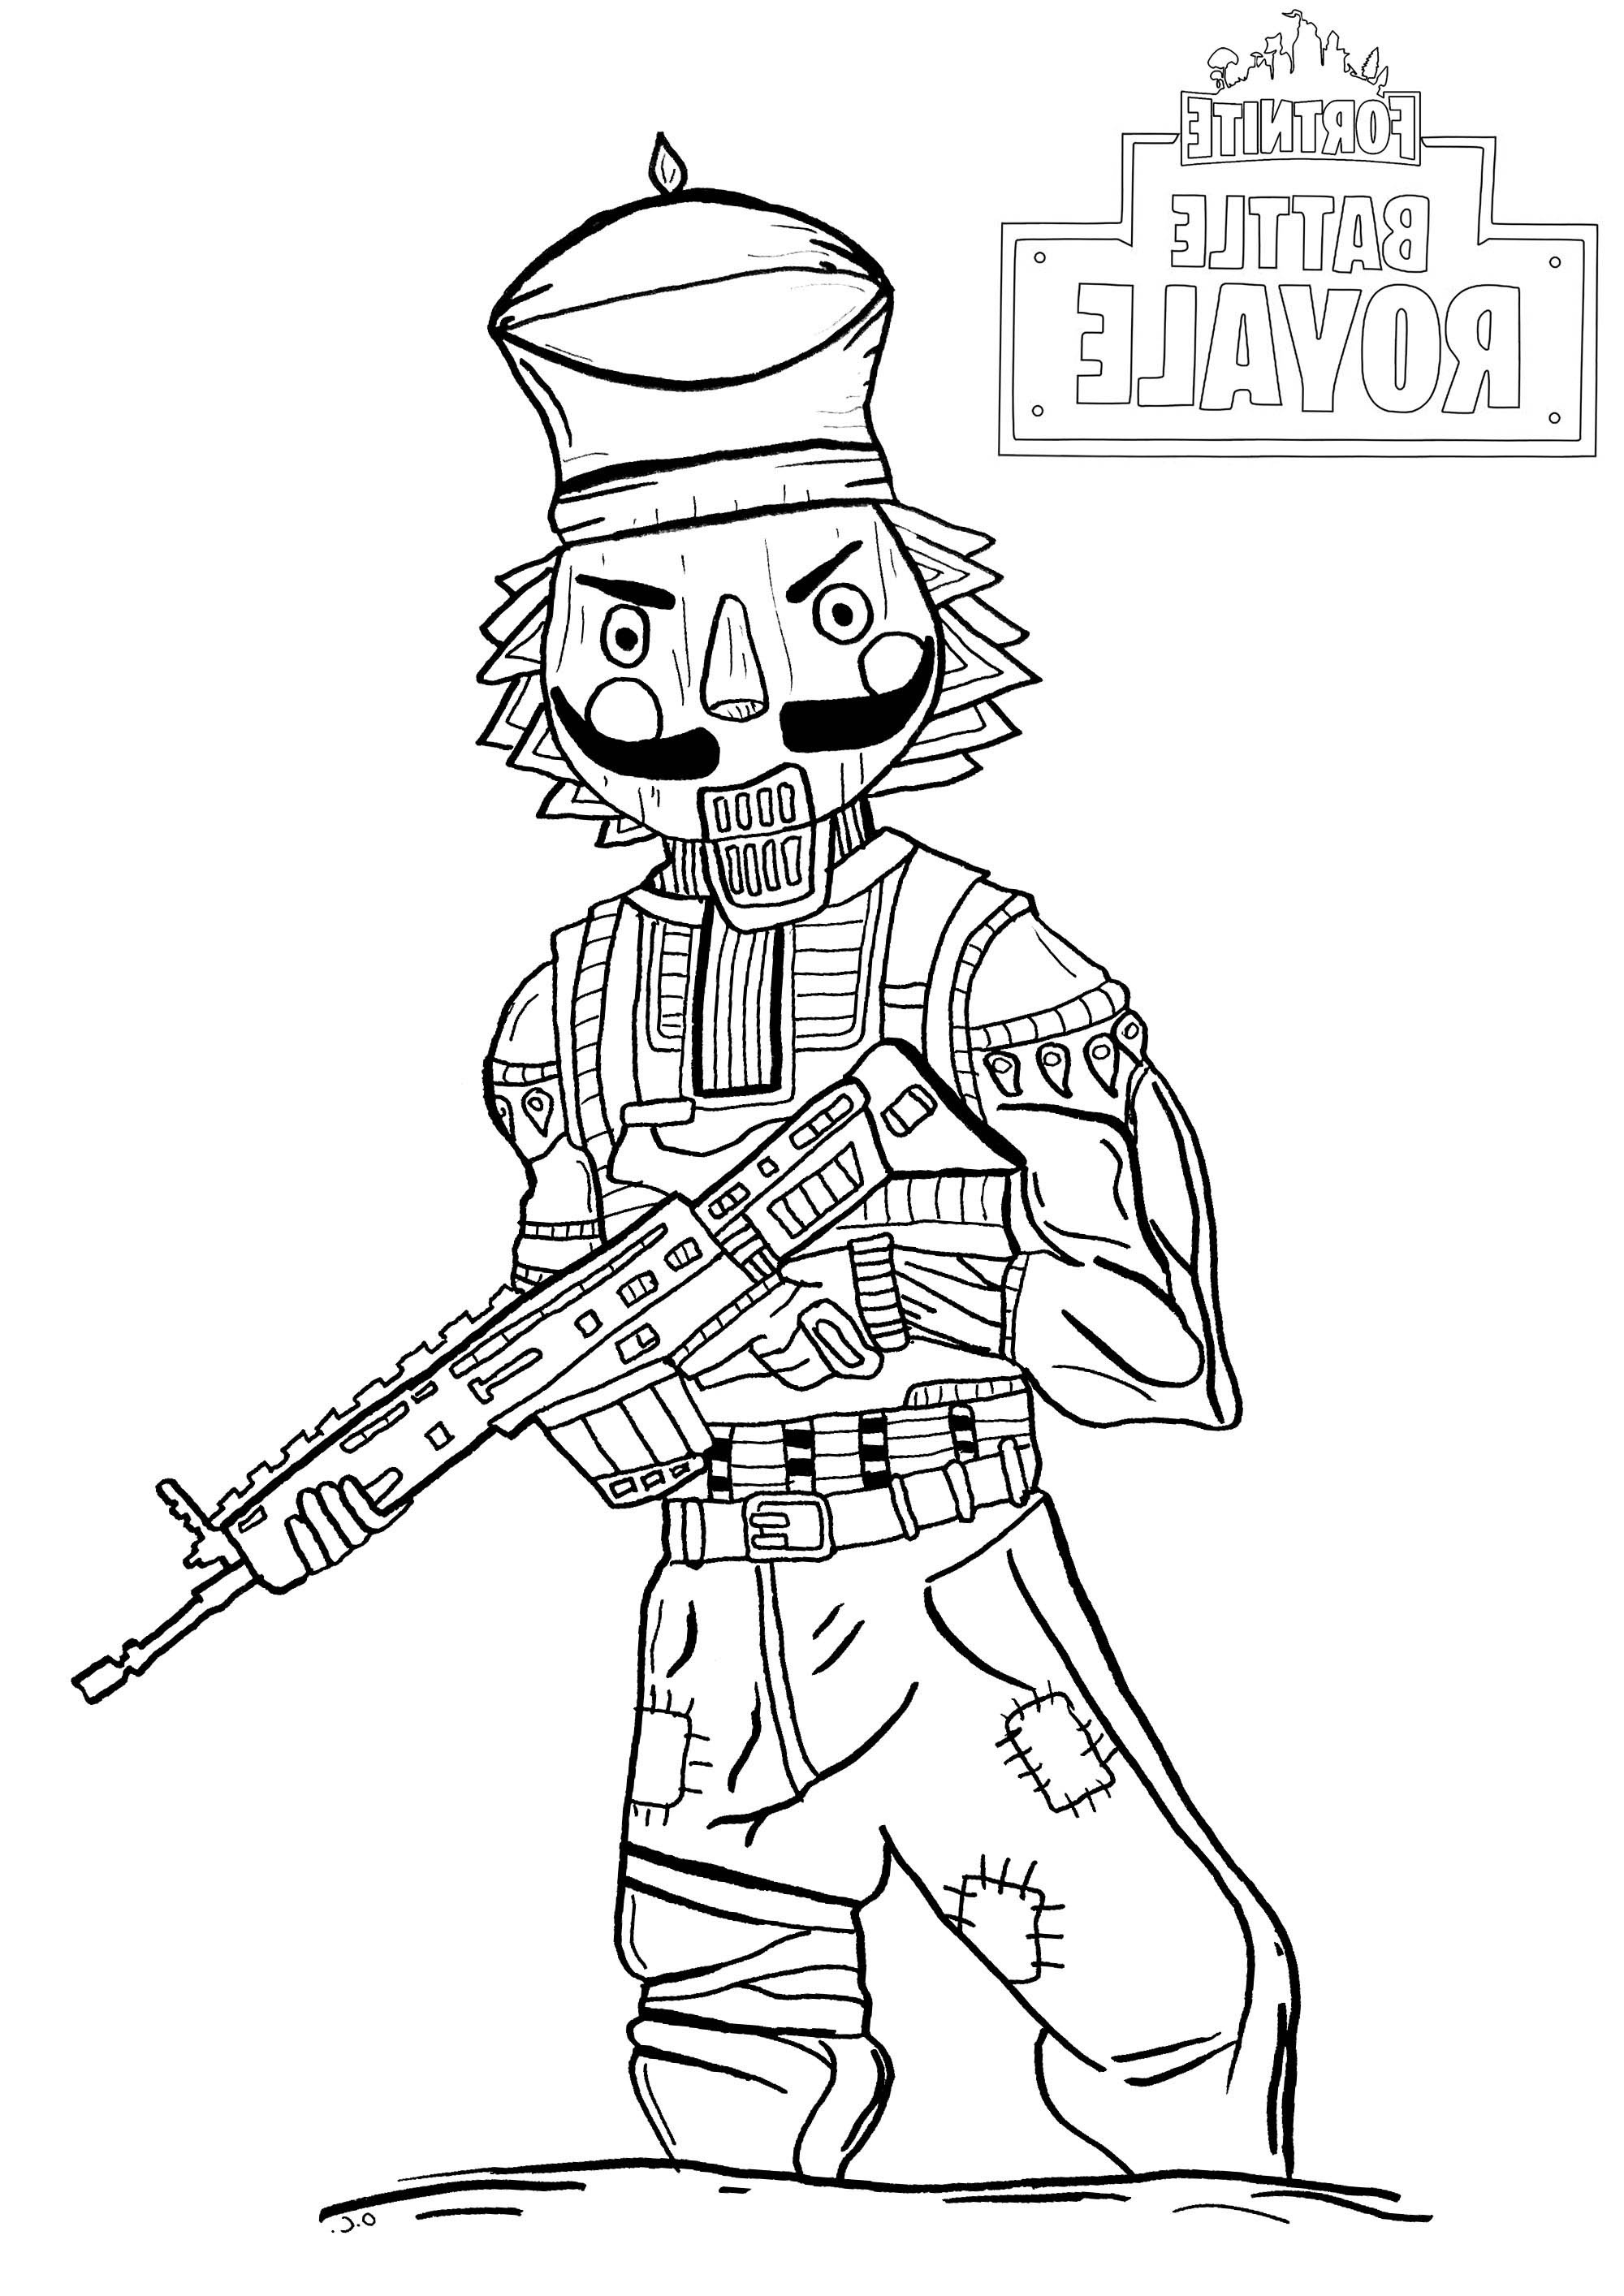 Dessin À Imprimer Fortnite Élégant Photos Coloriage serapportantà Coloriage A Imprimer Fortnite